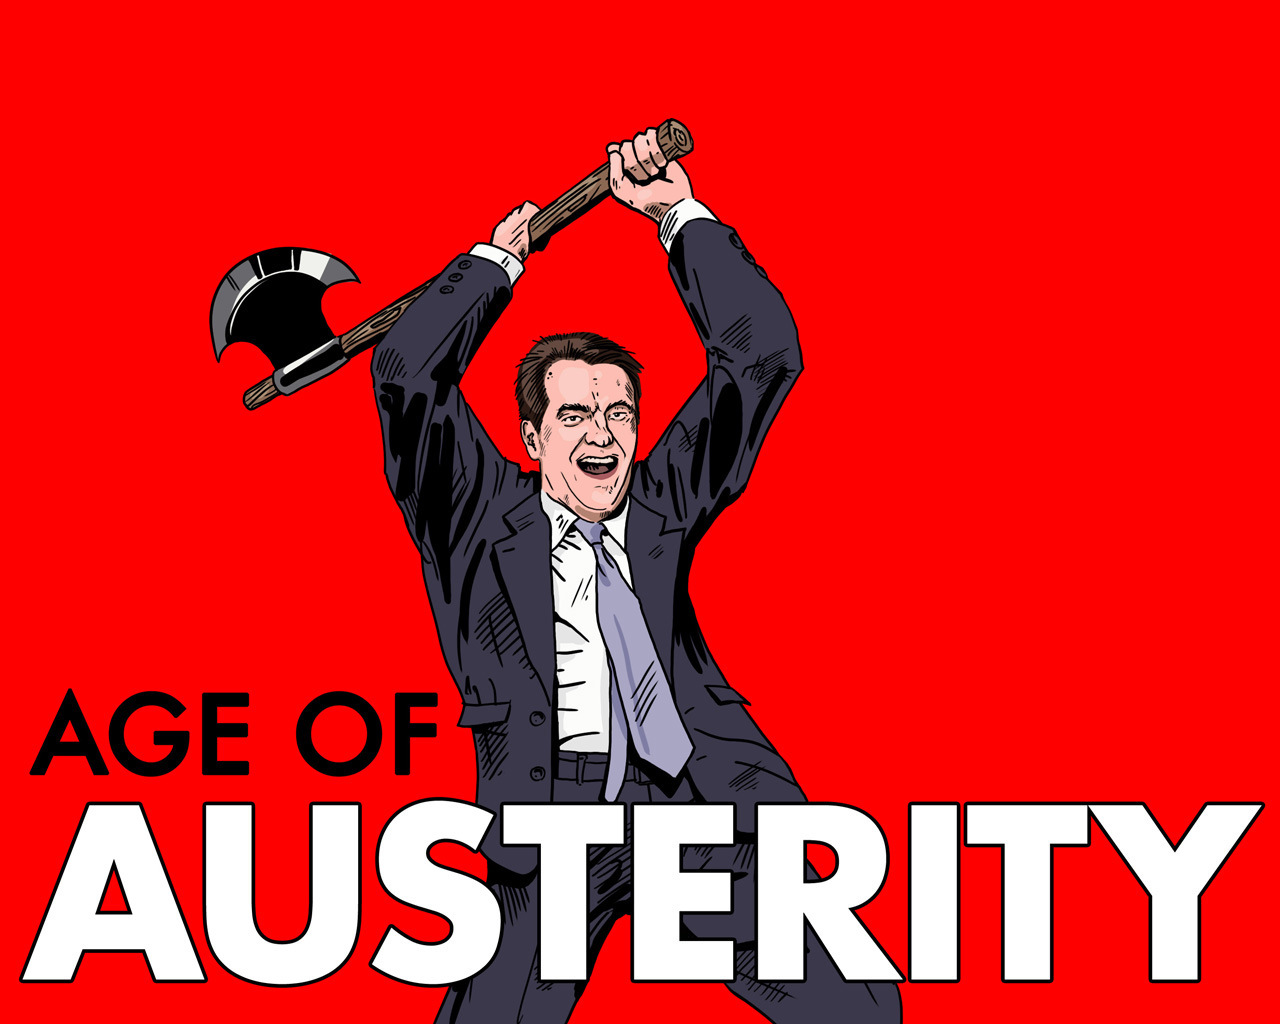 age of austerity